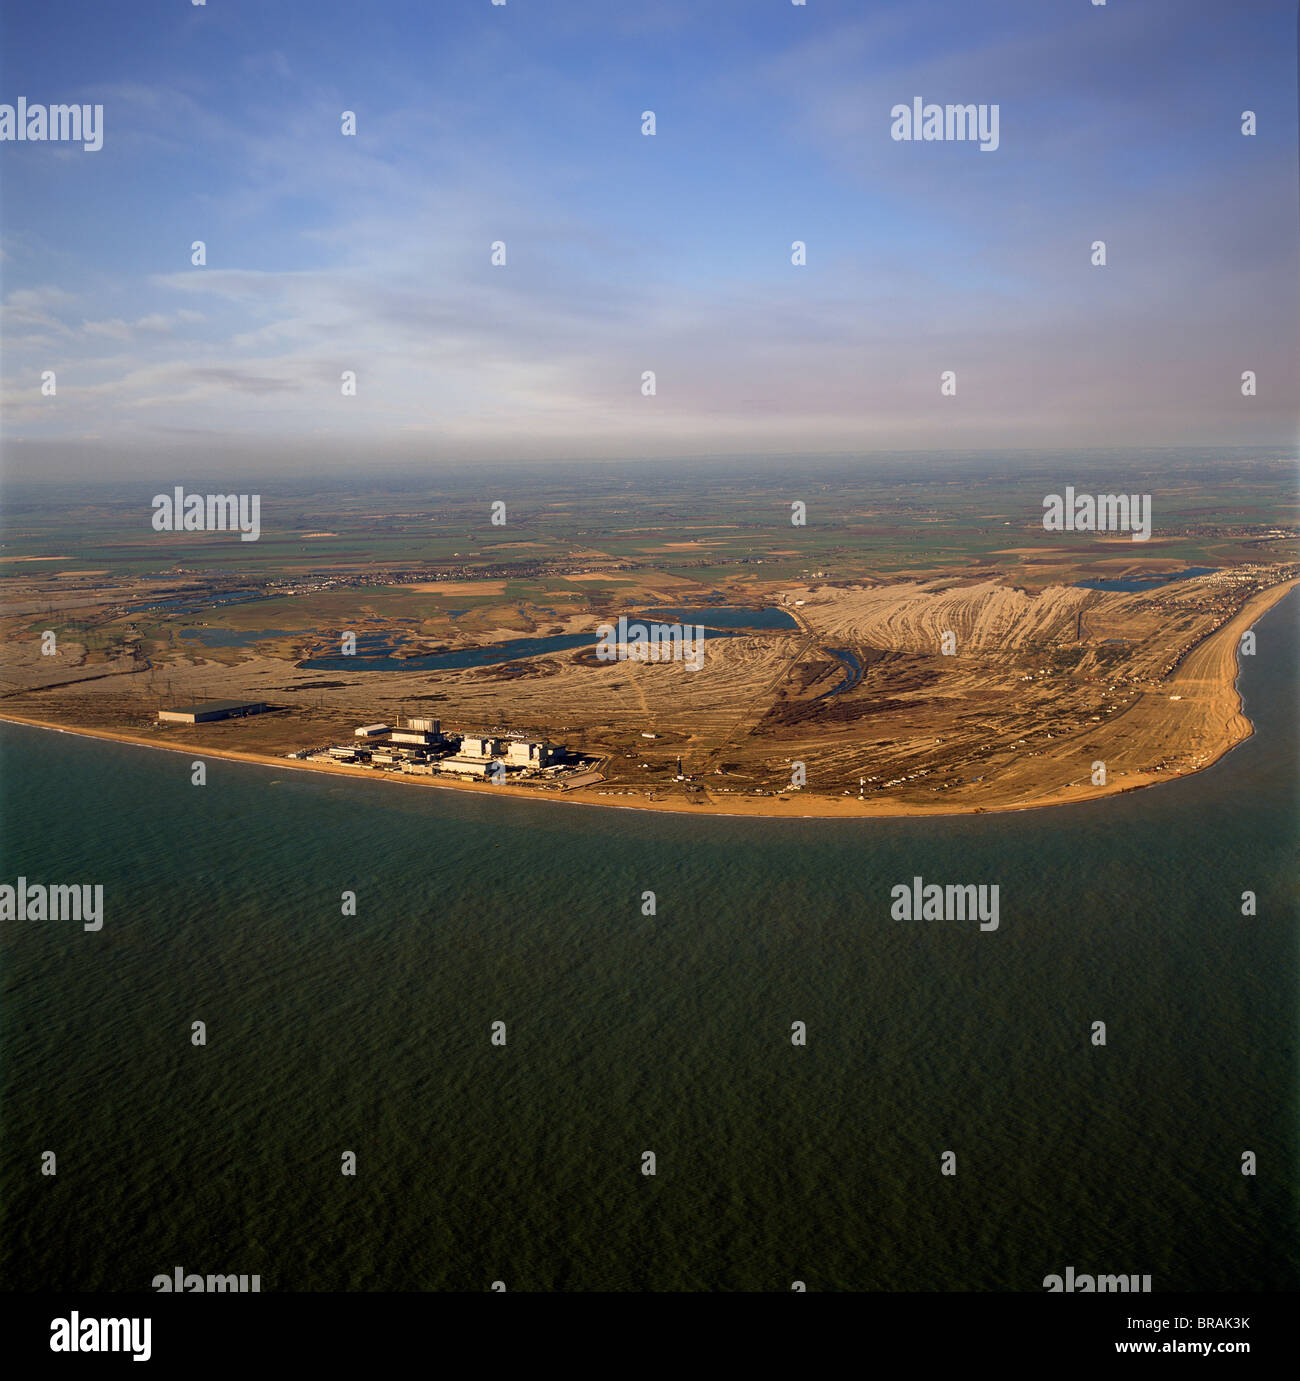 Aerial image of Dungeness Nuclear Power Station, Dungeness headland, Kent, England, United Kingdom, Europe - Stock Image